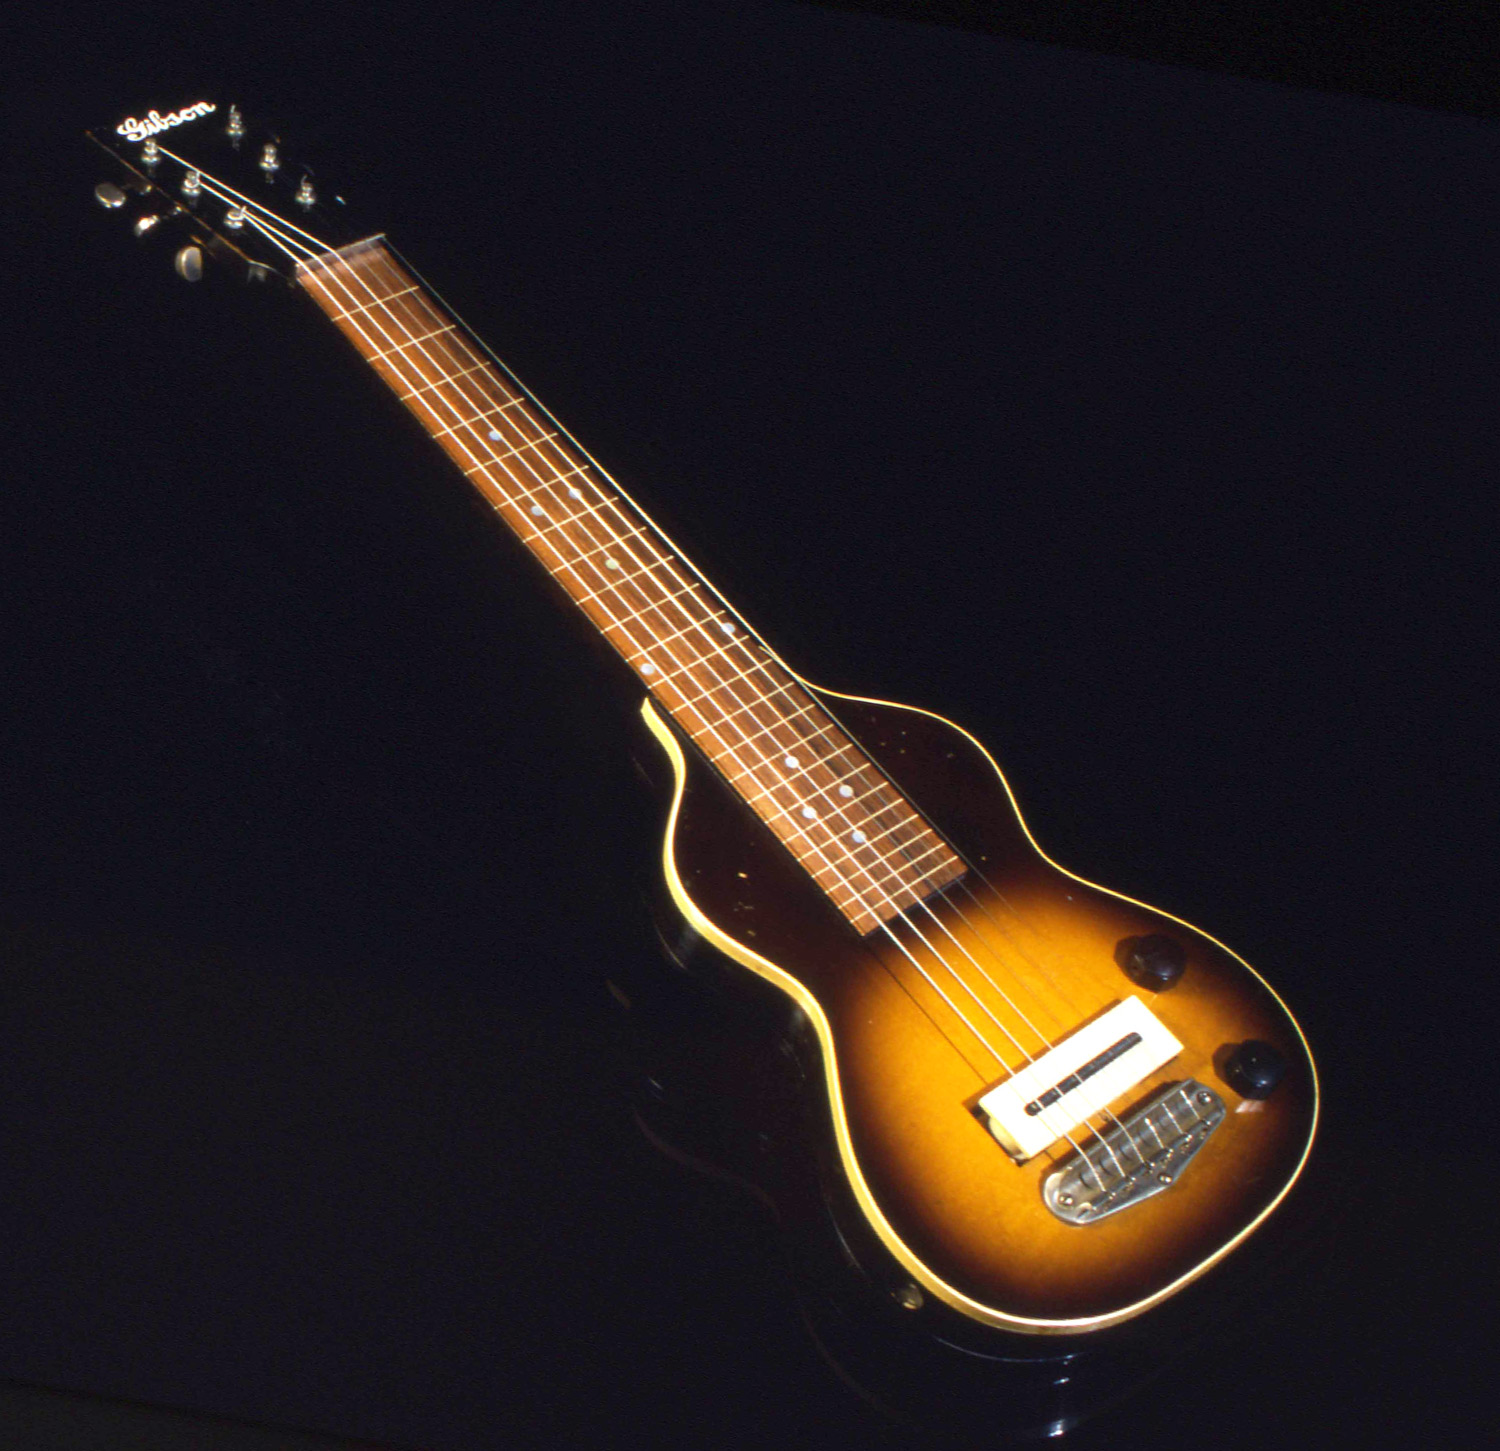 Image of the Gibson EH-100 Guitar